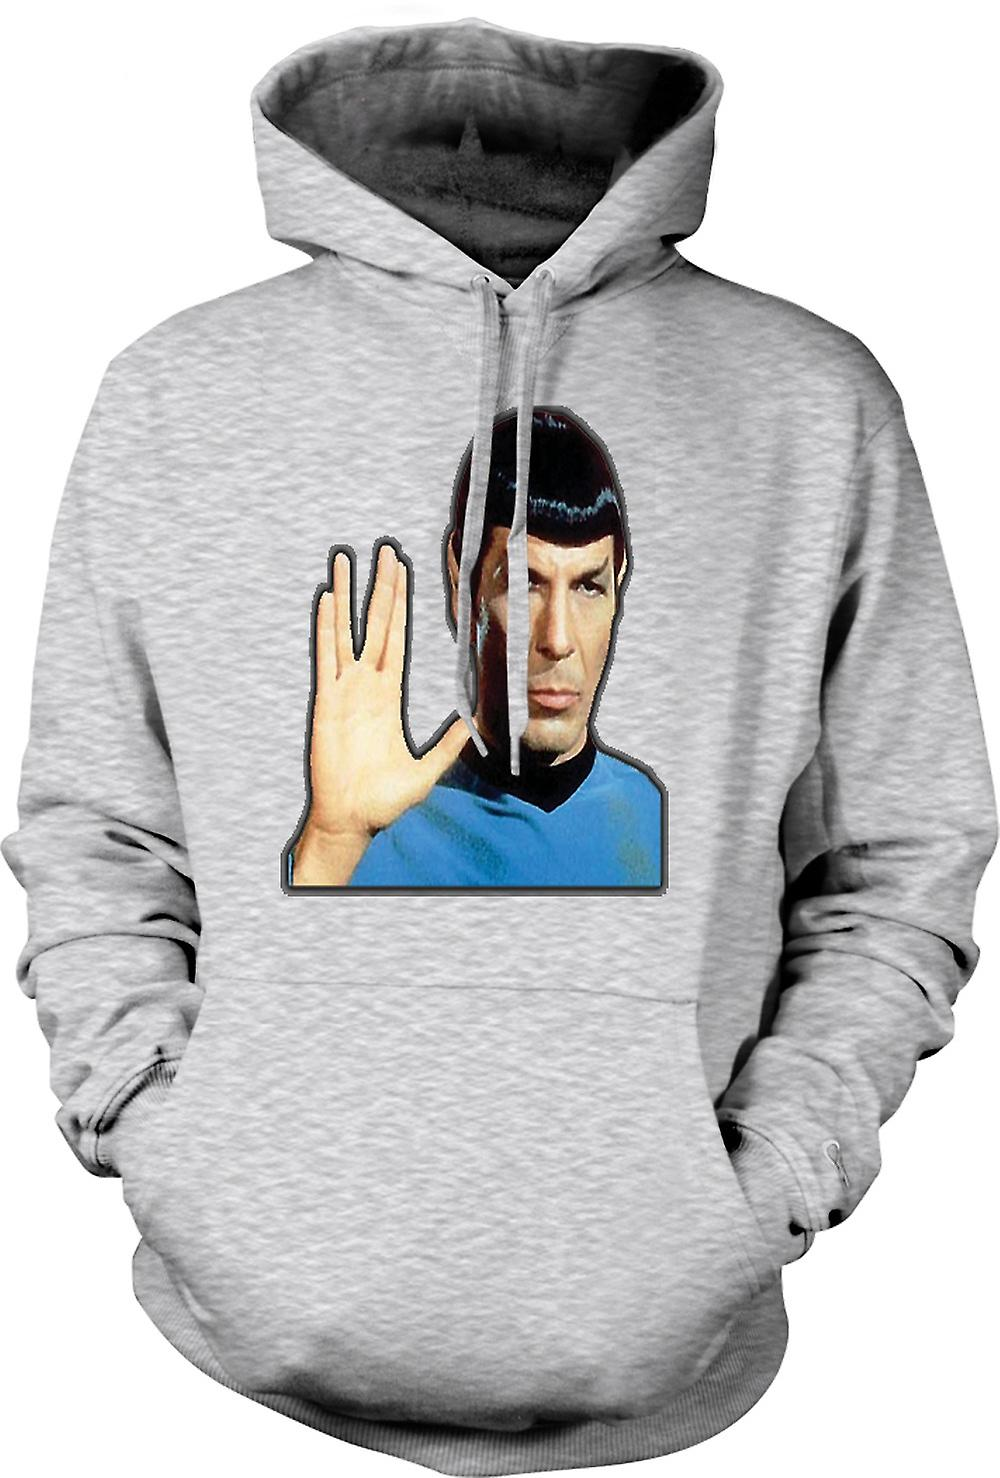 Mens Hoodie - Mr Spock - Star Trek